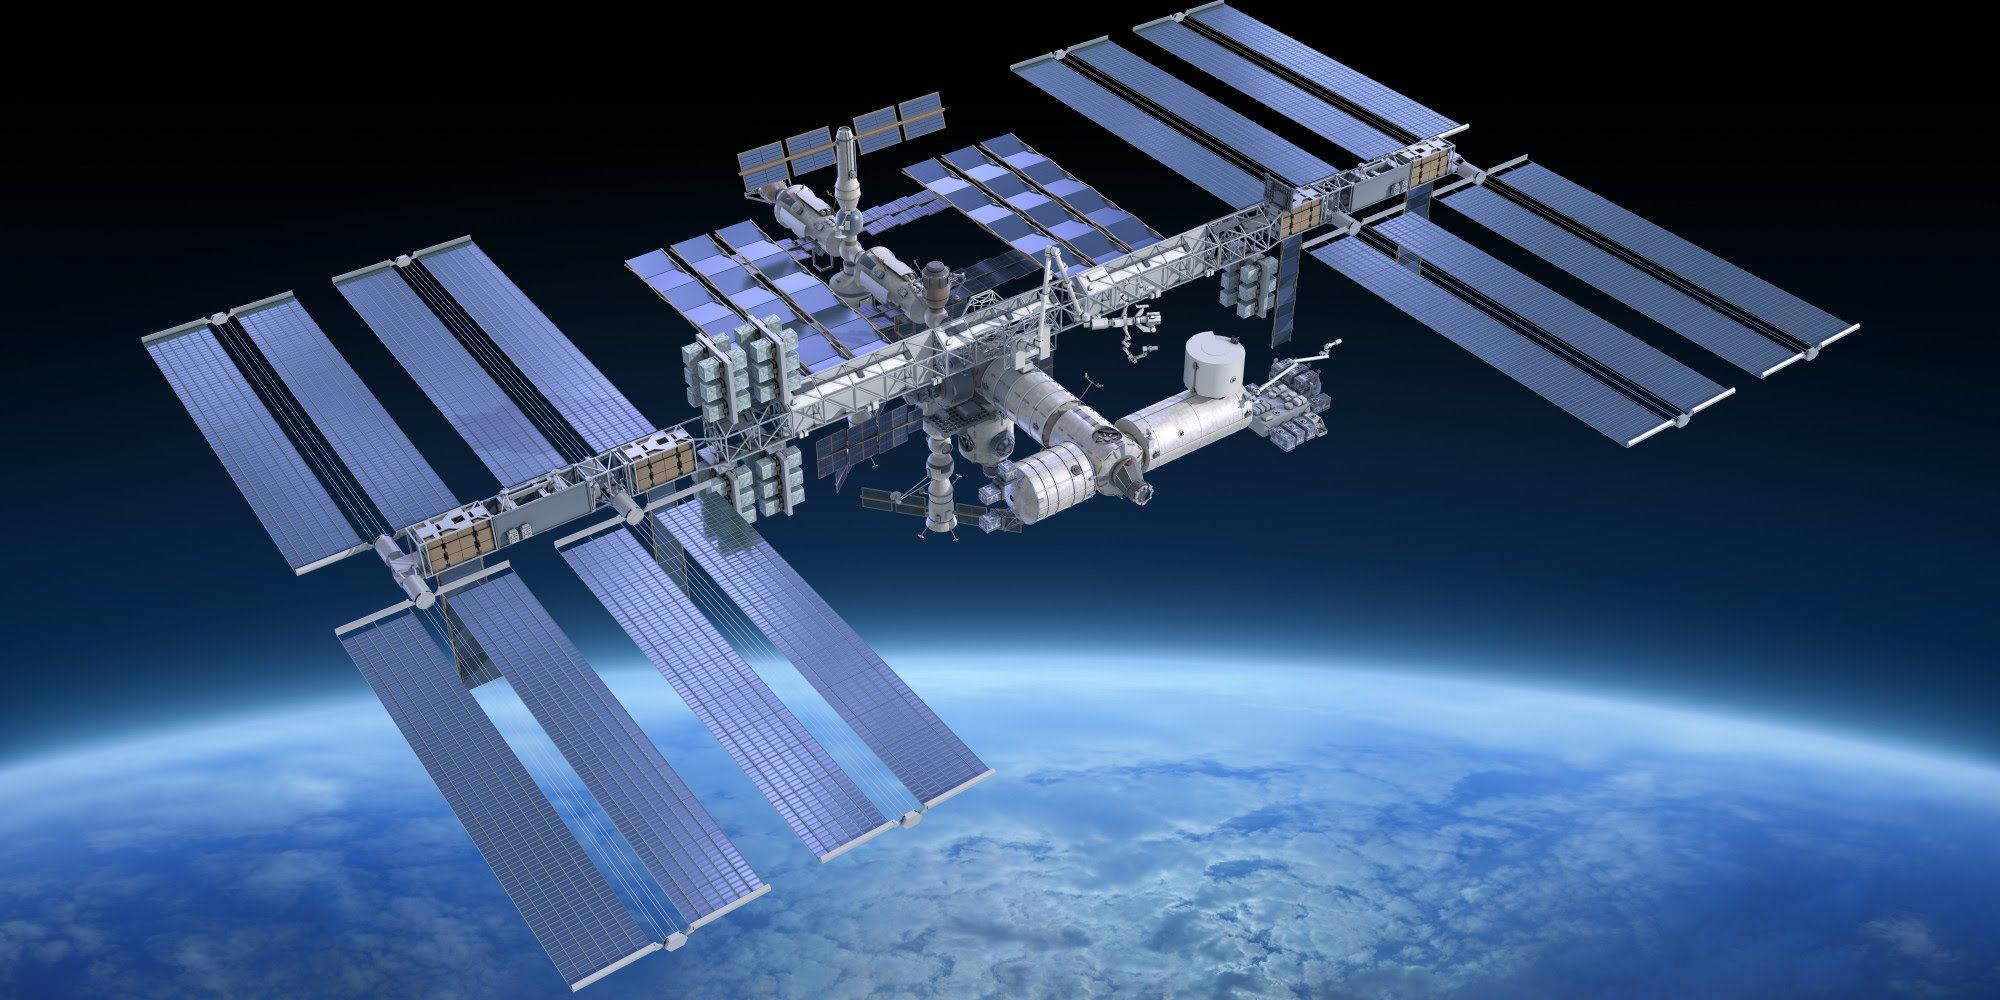 Building the International Space Station 'ISS